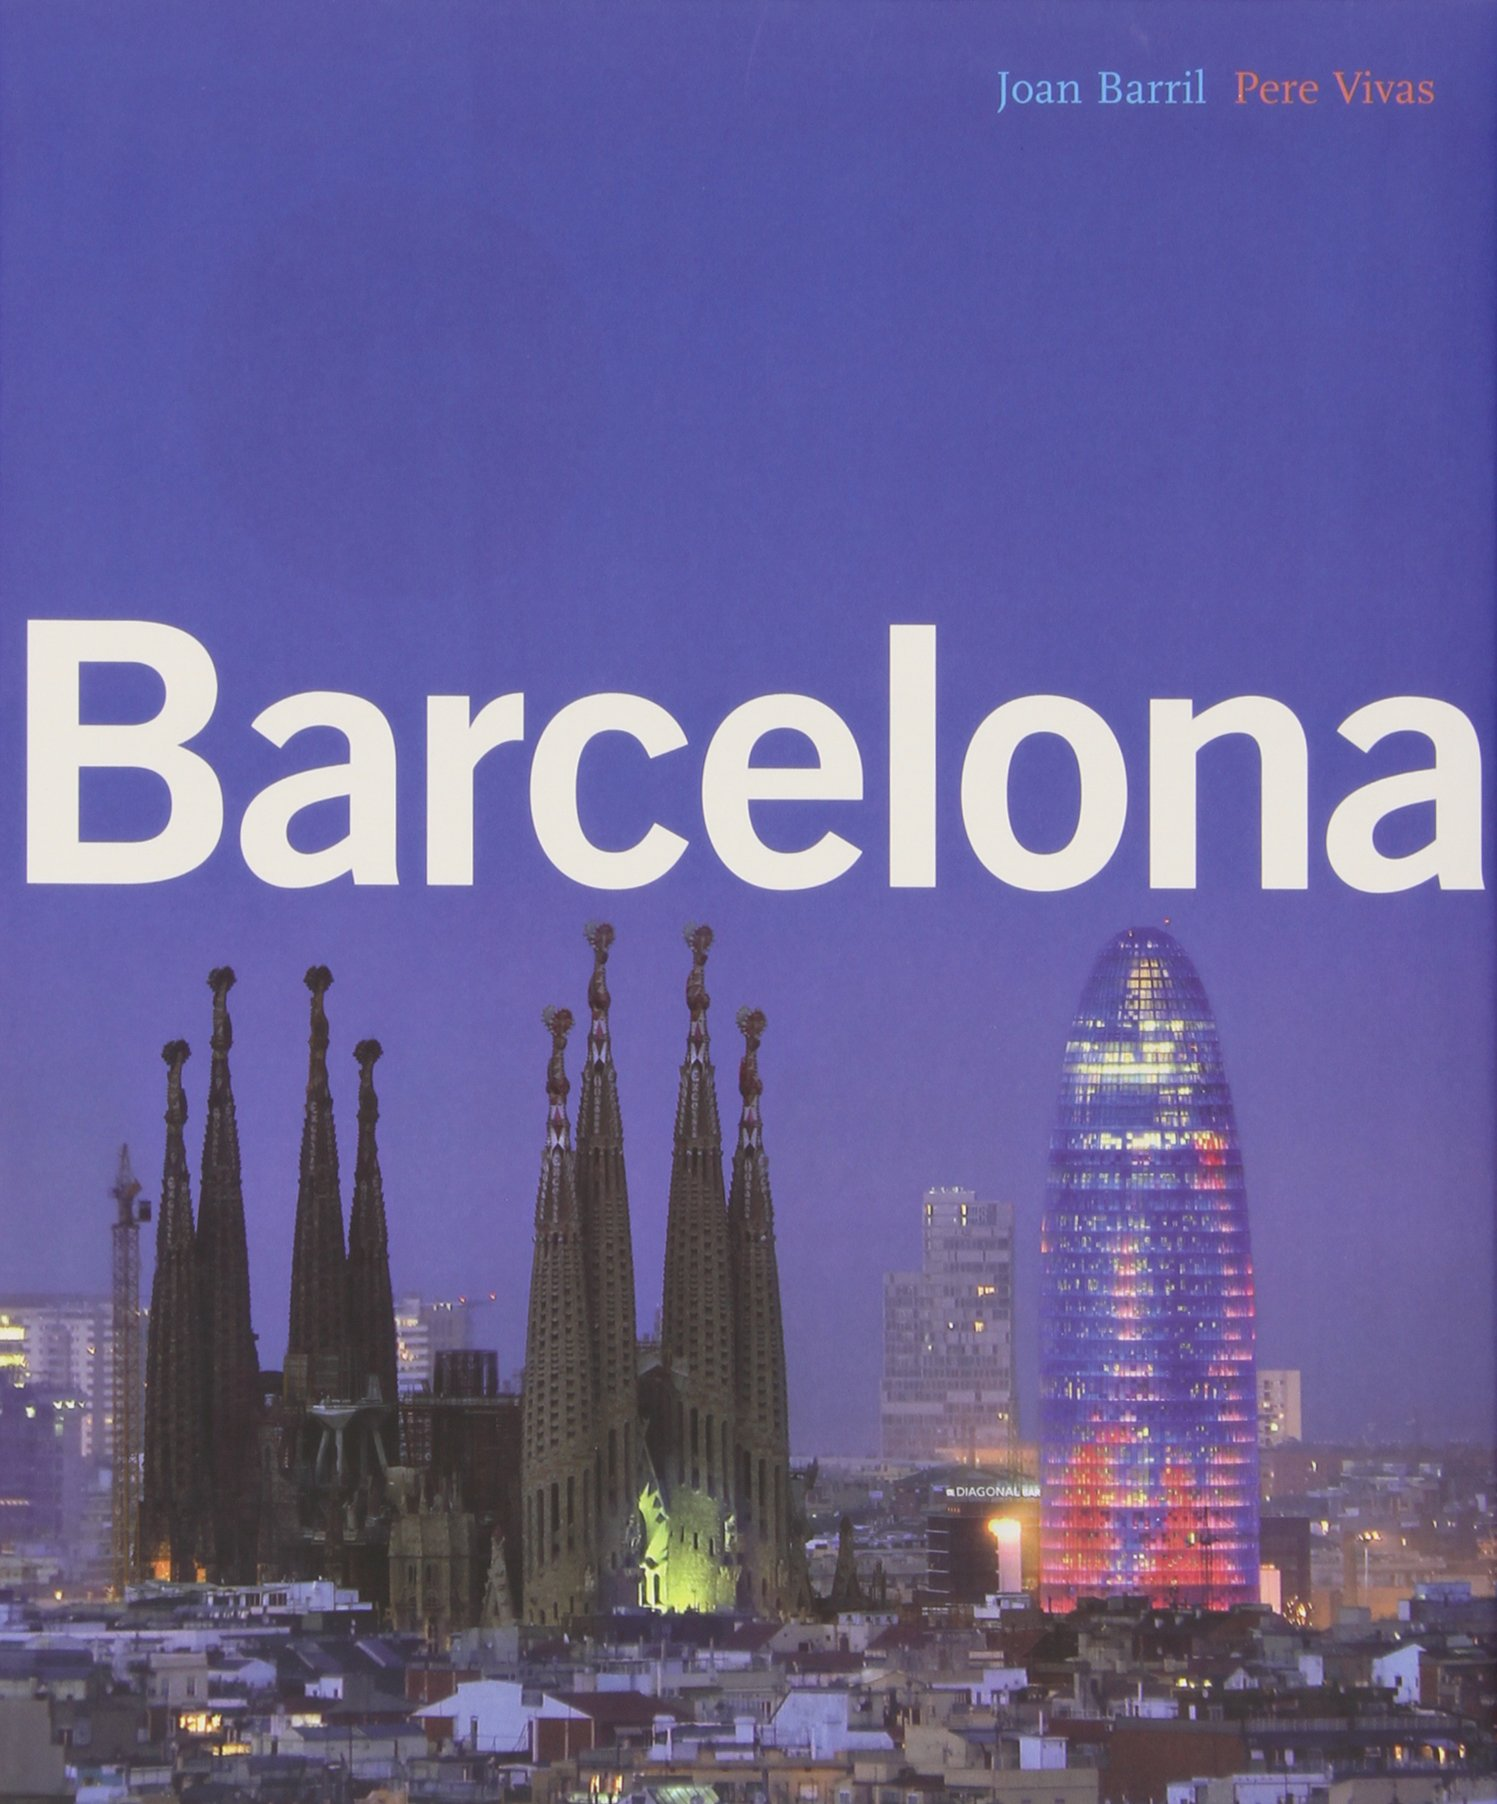 Read Online BARCELONA PALIMPSEST (English, Catalan and Spanish Edition) ebook